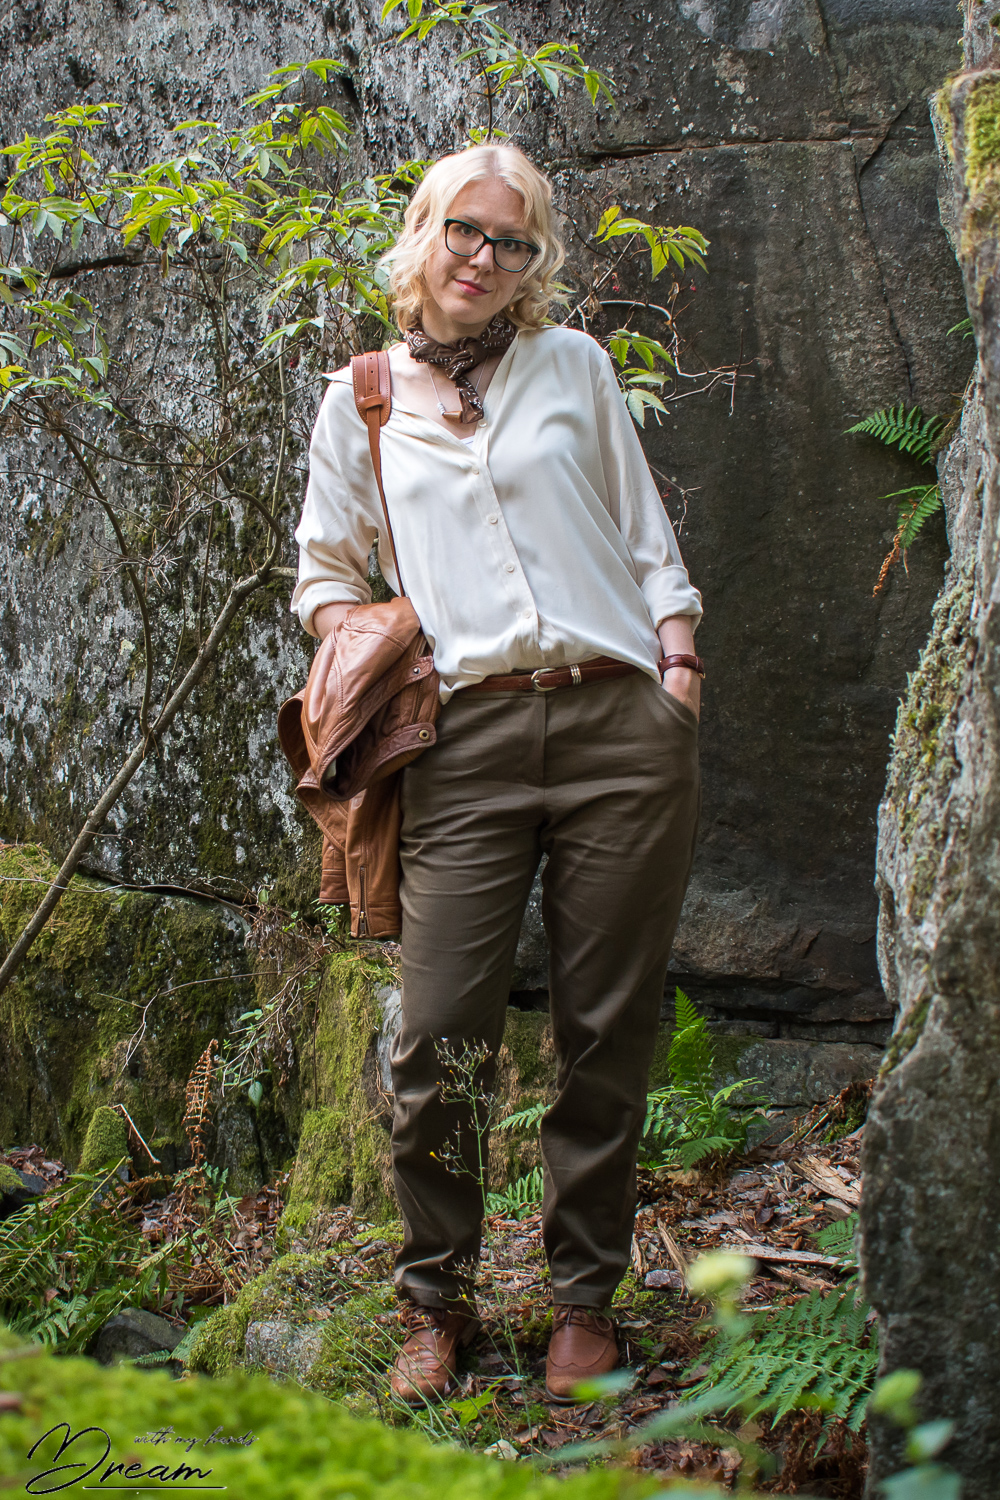 alpi-trousers-and-a-refashioned-blouse-a-la-indiana-jones